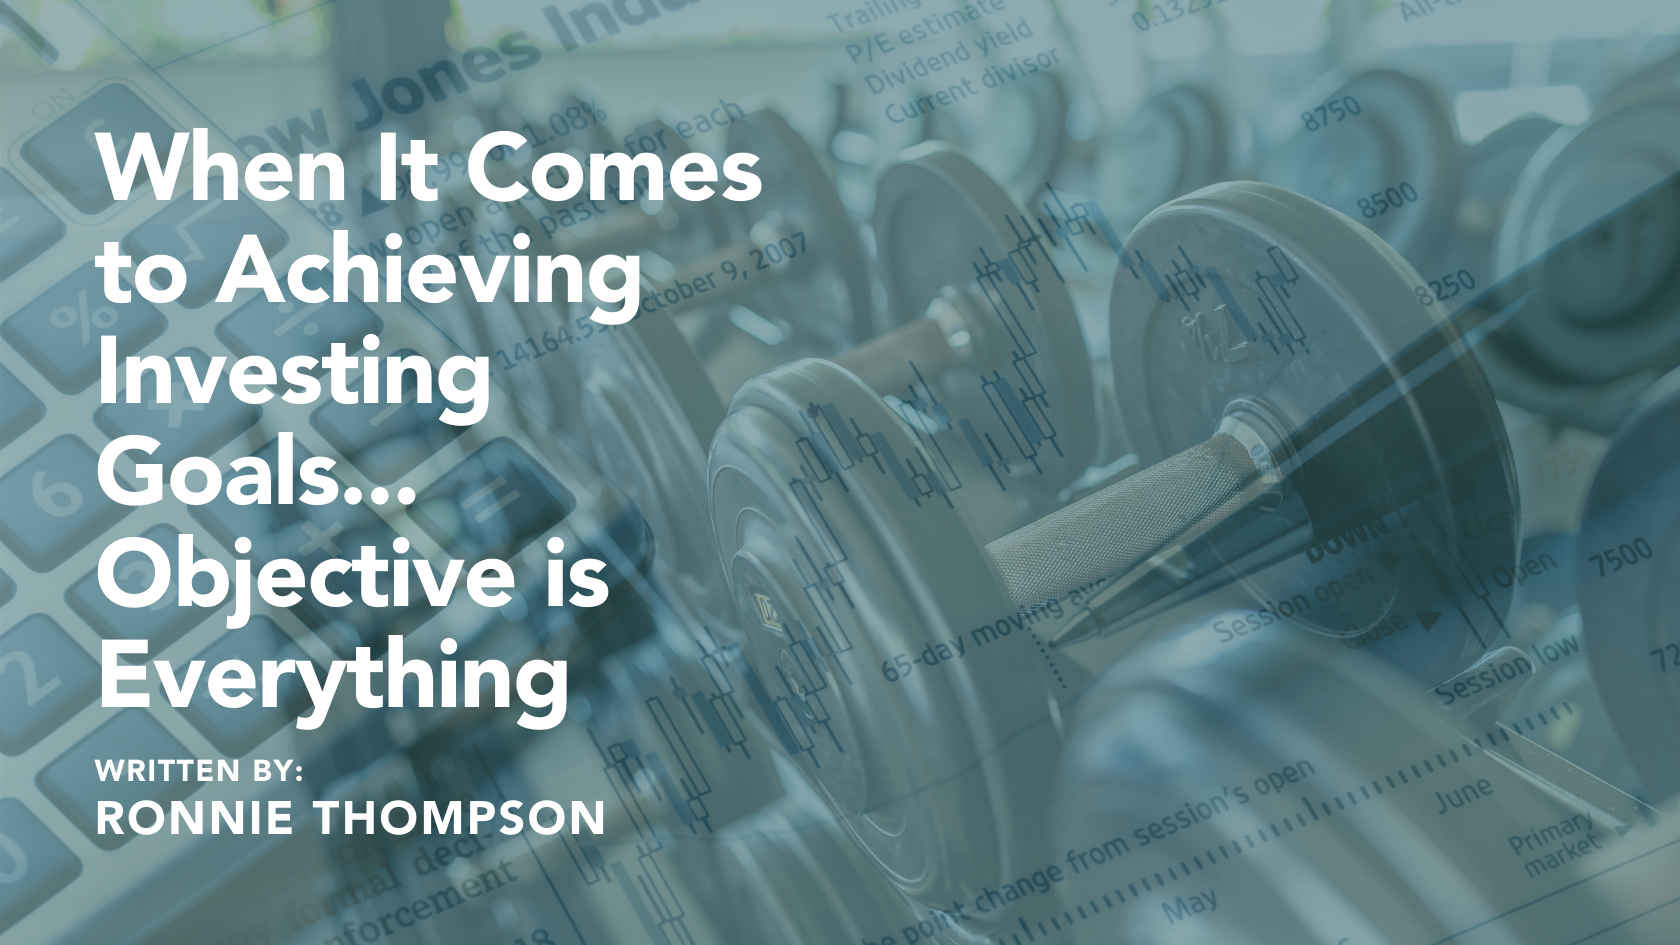 When it Comes to Achieving Investing Goals…Objective is Everything